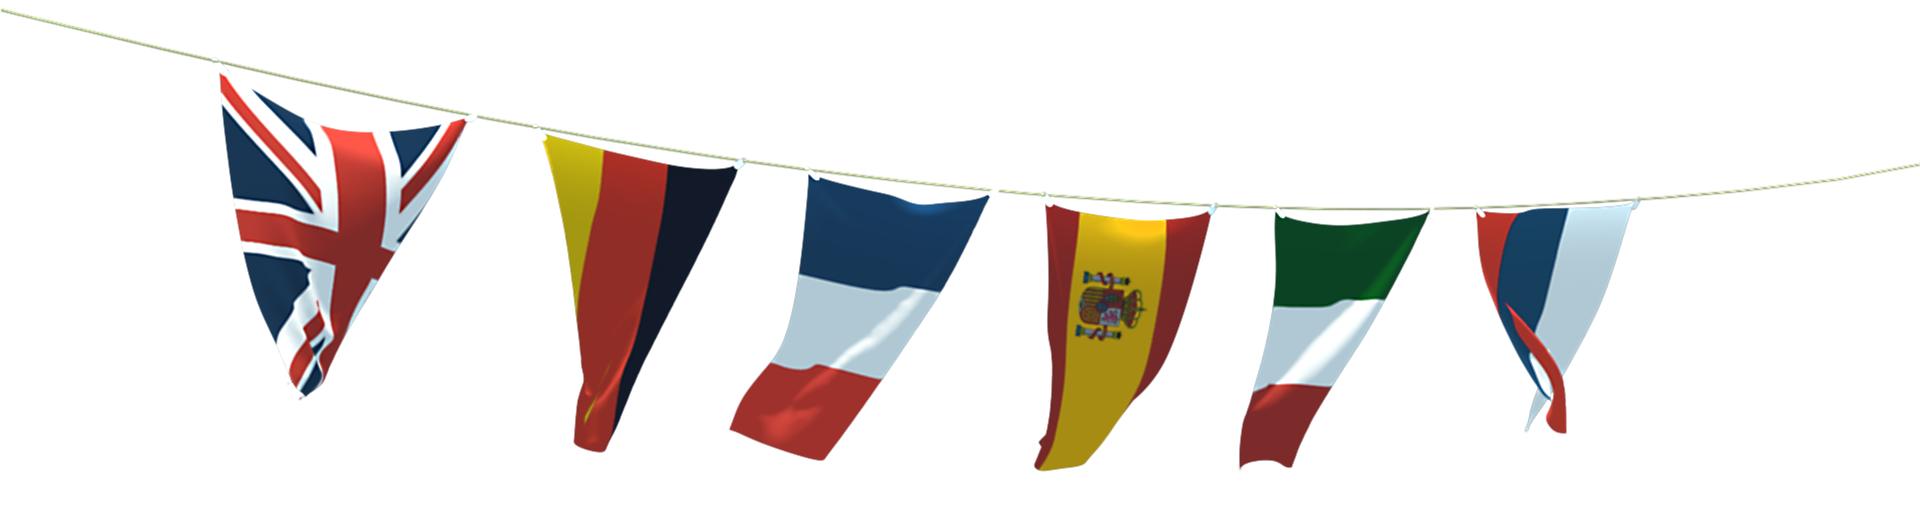 Flags_LAY_v001